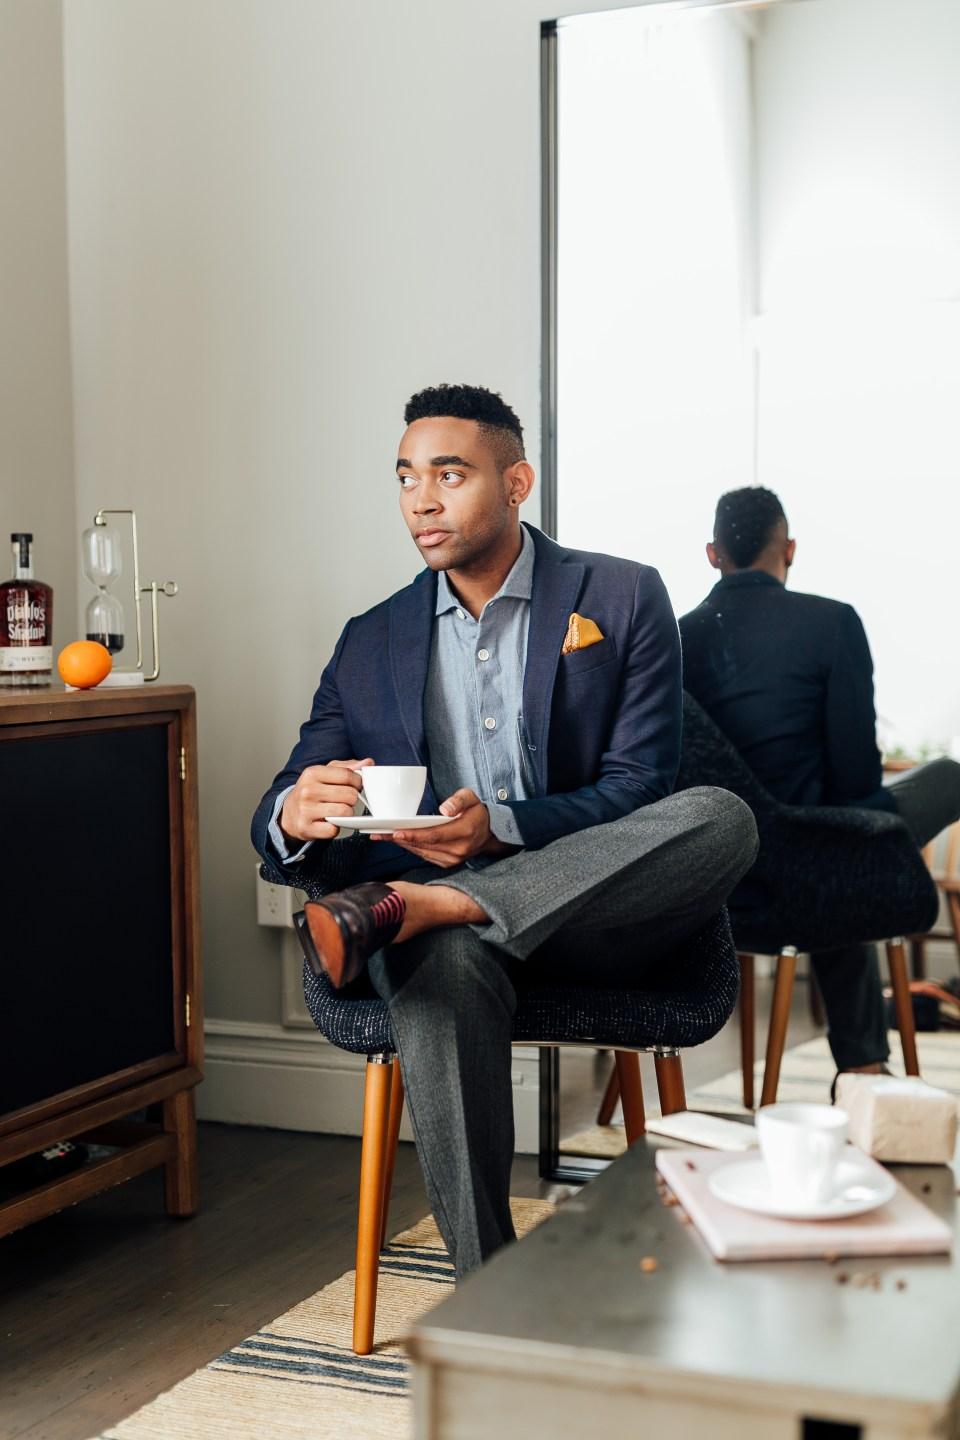 ethically dressed man in suit, sits holding coffee